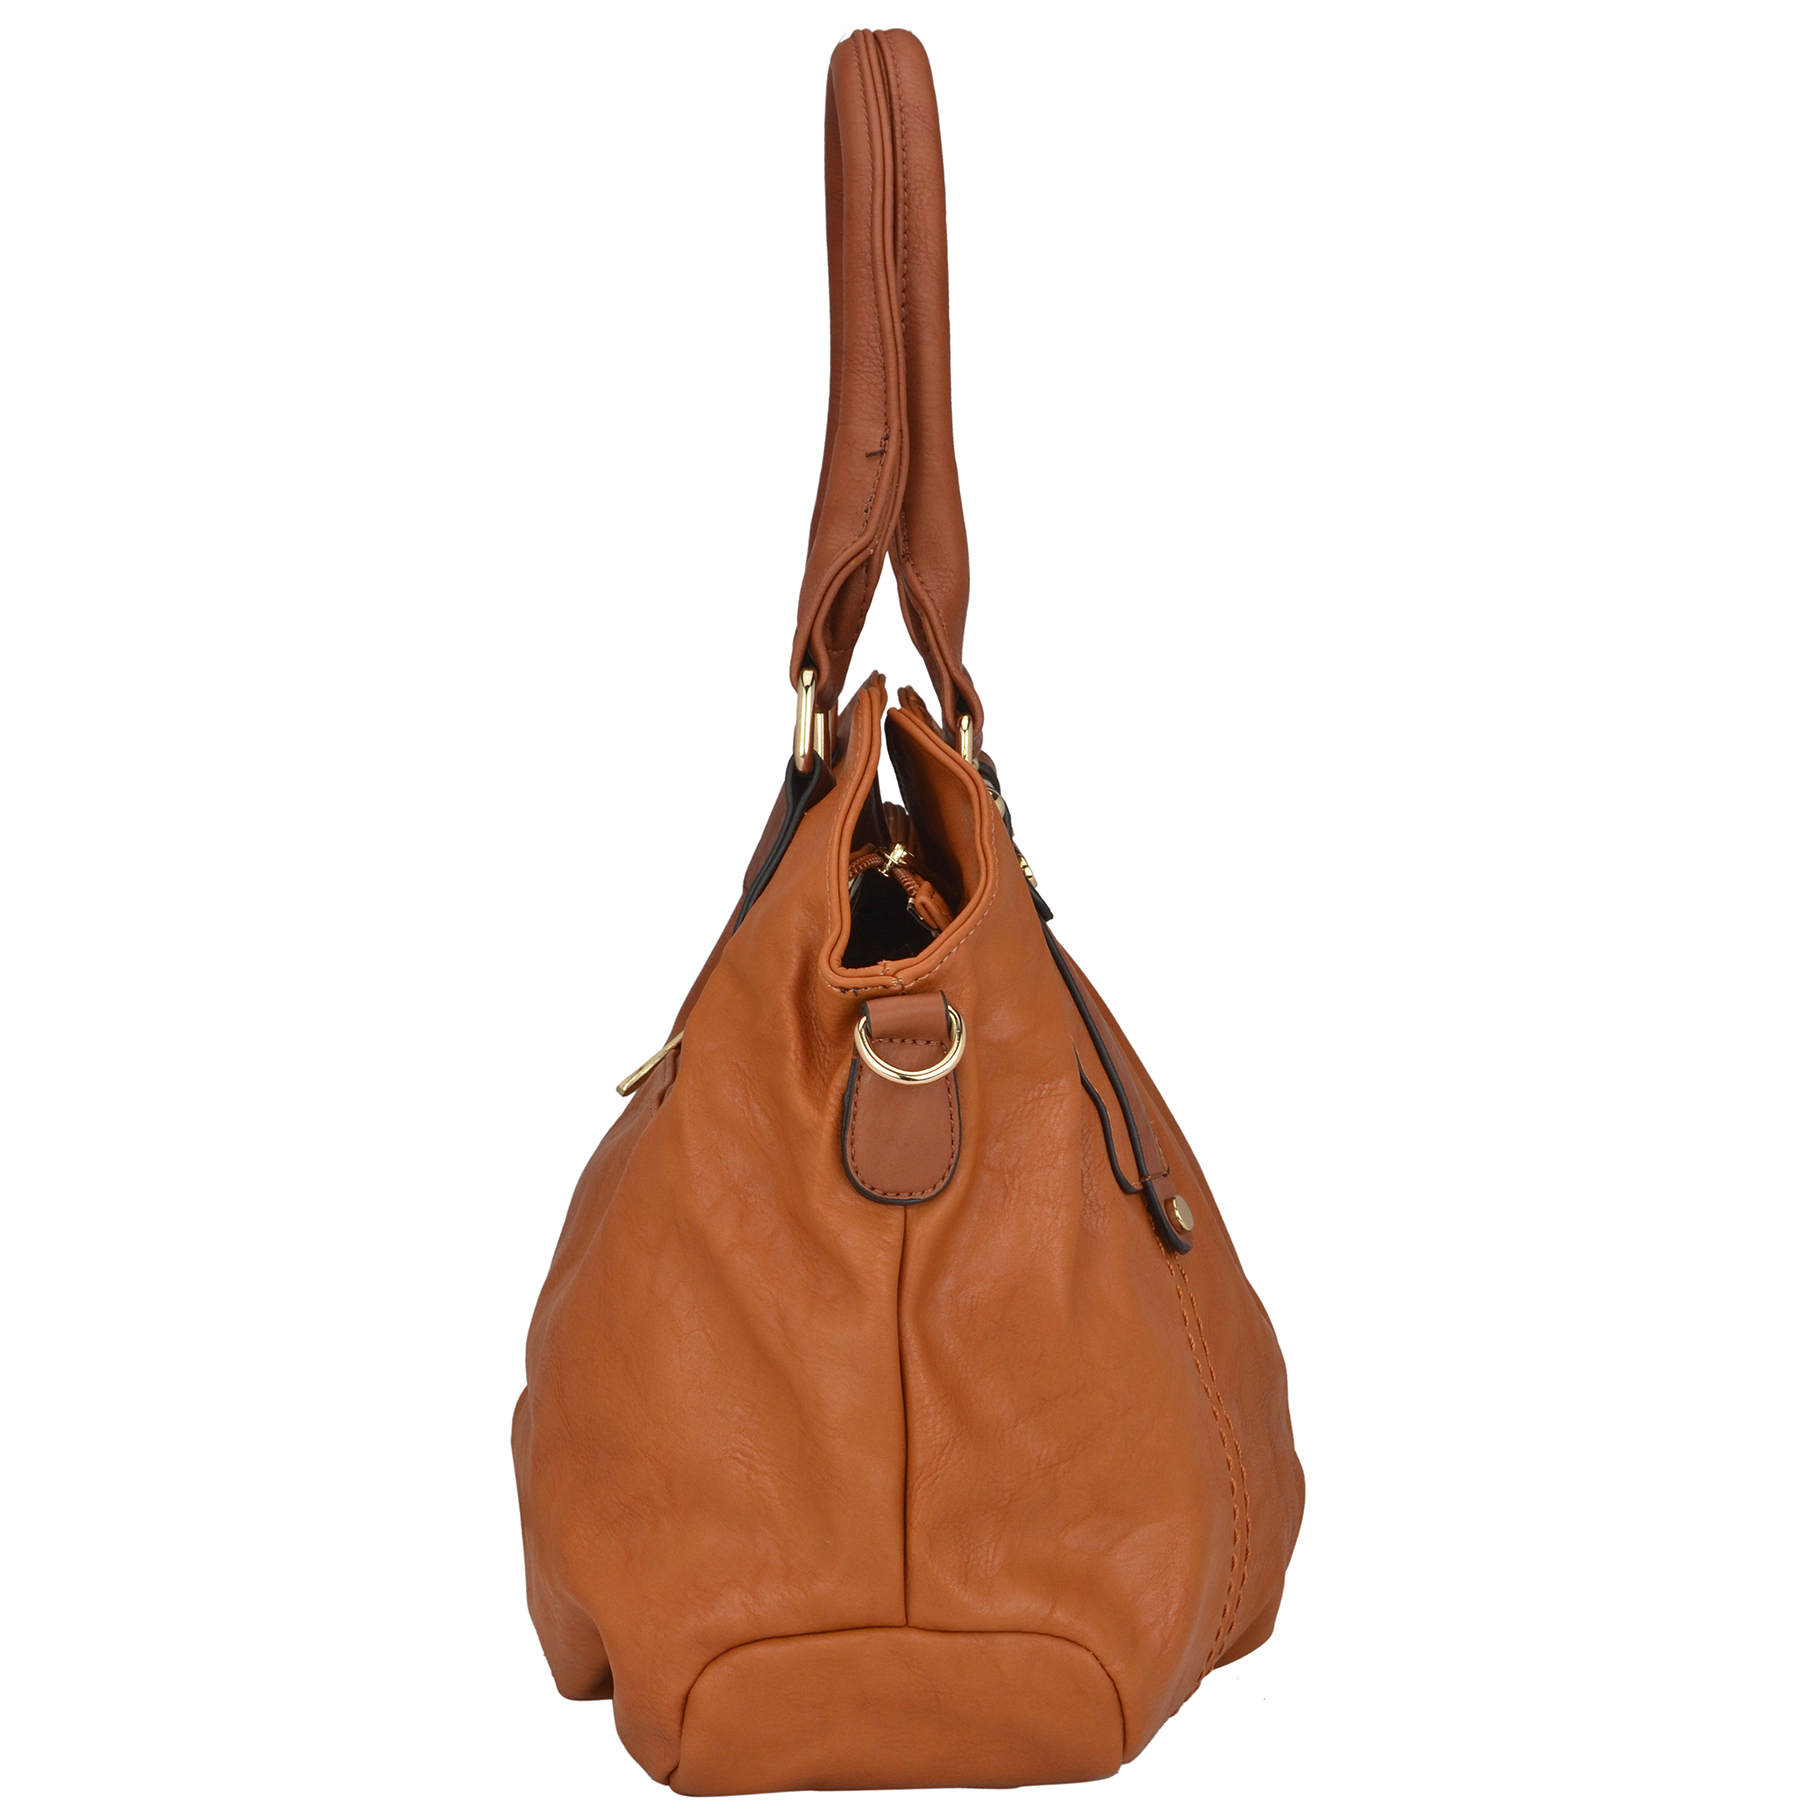 mg-collection-mimi-office-tote-style-handbag-jsh-yd-1225br-3.jpg